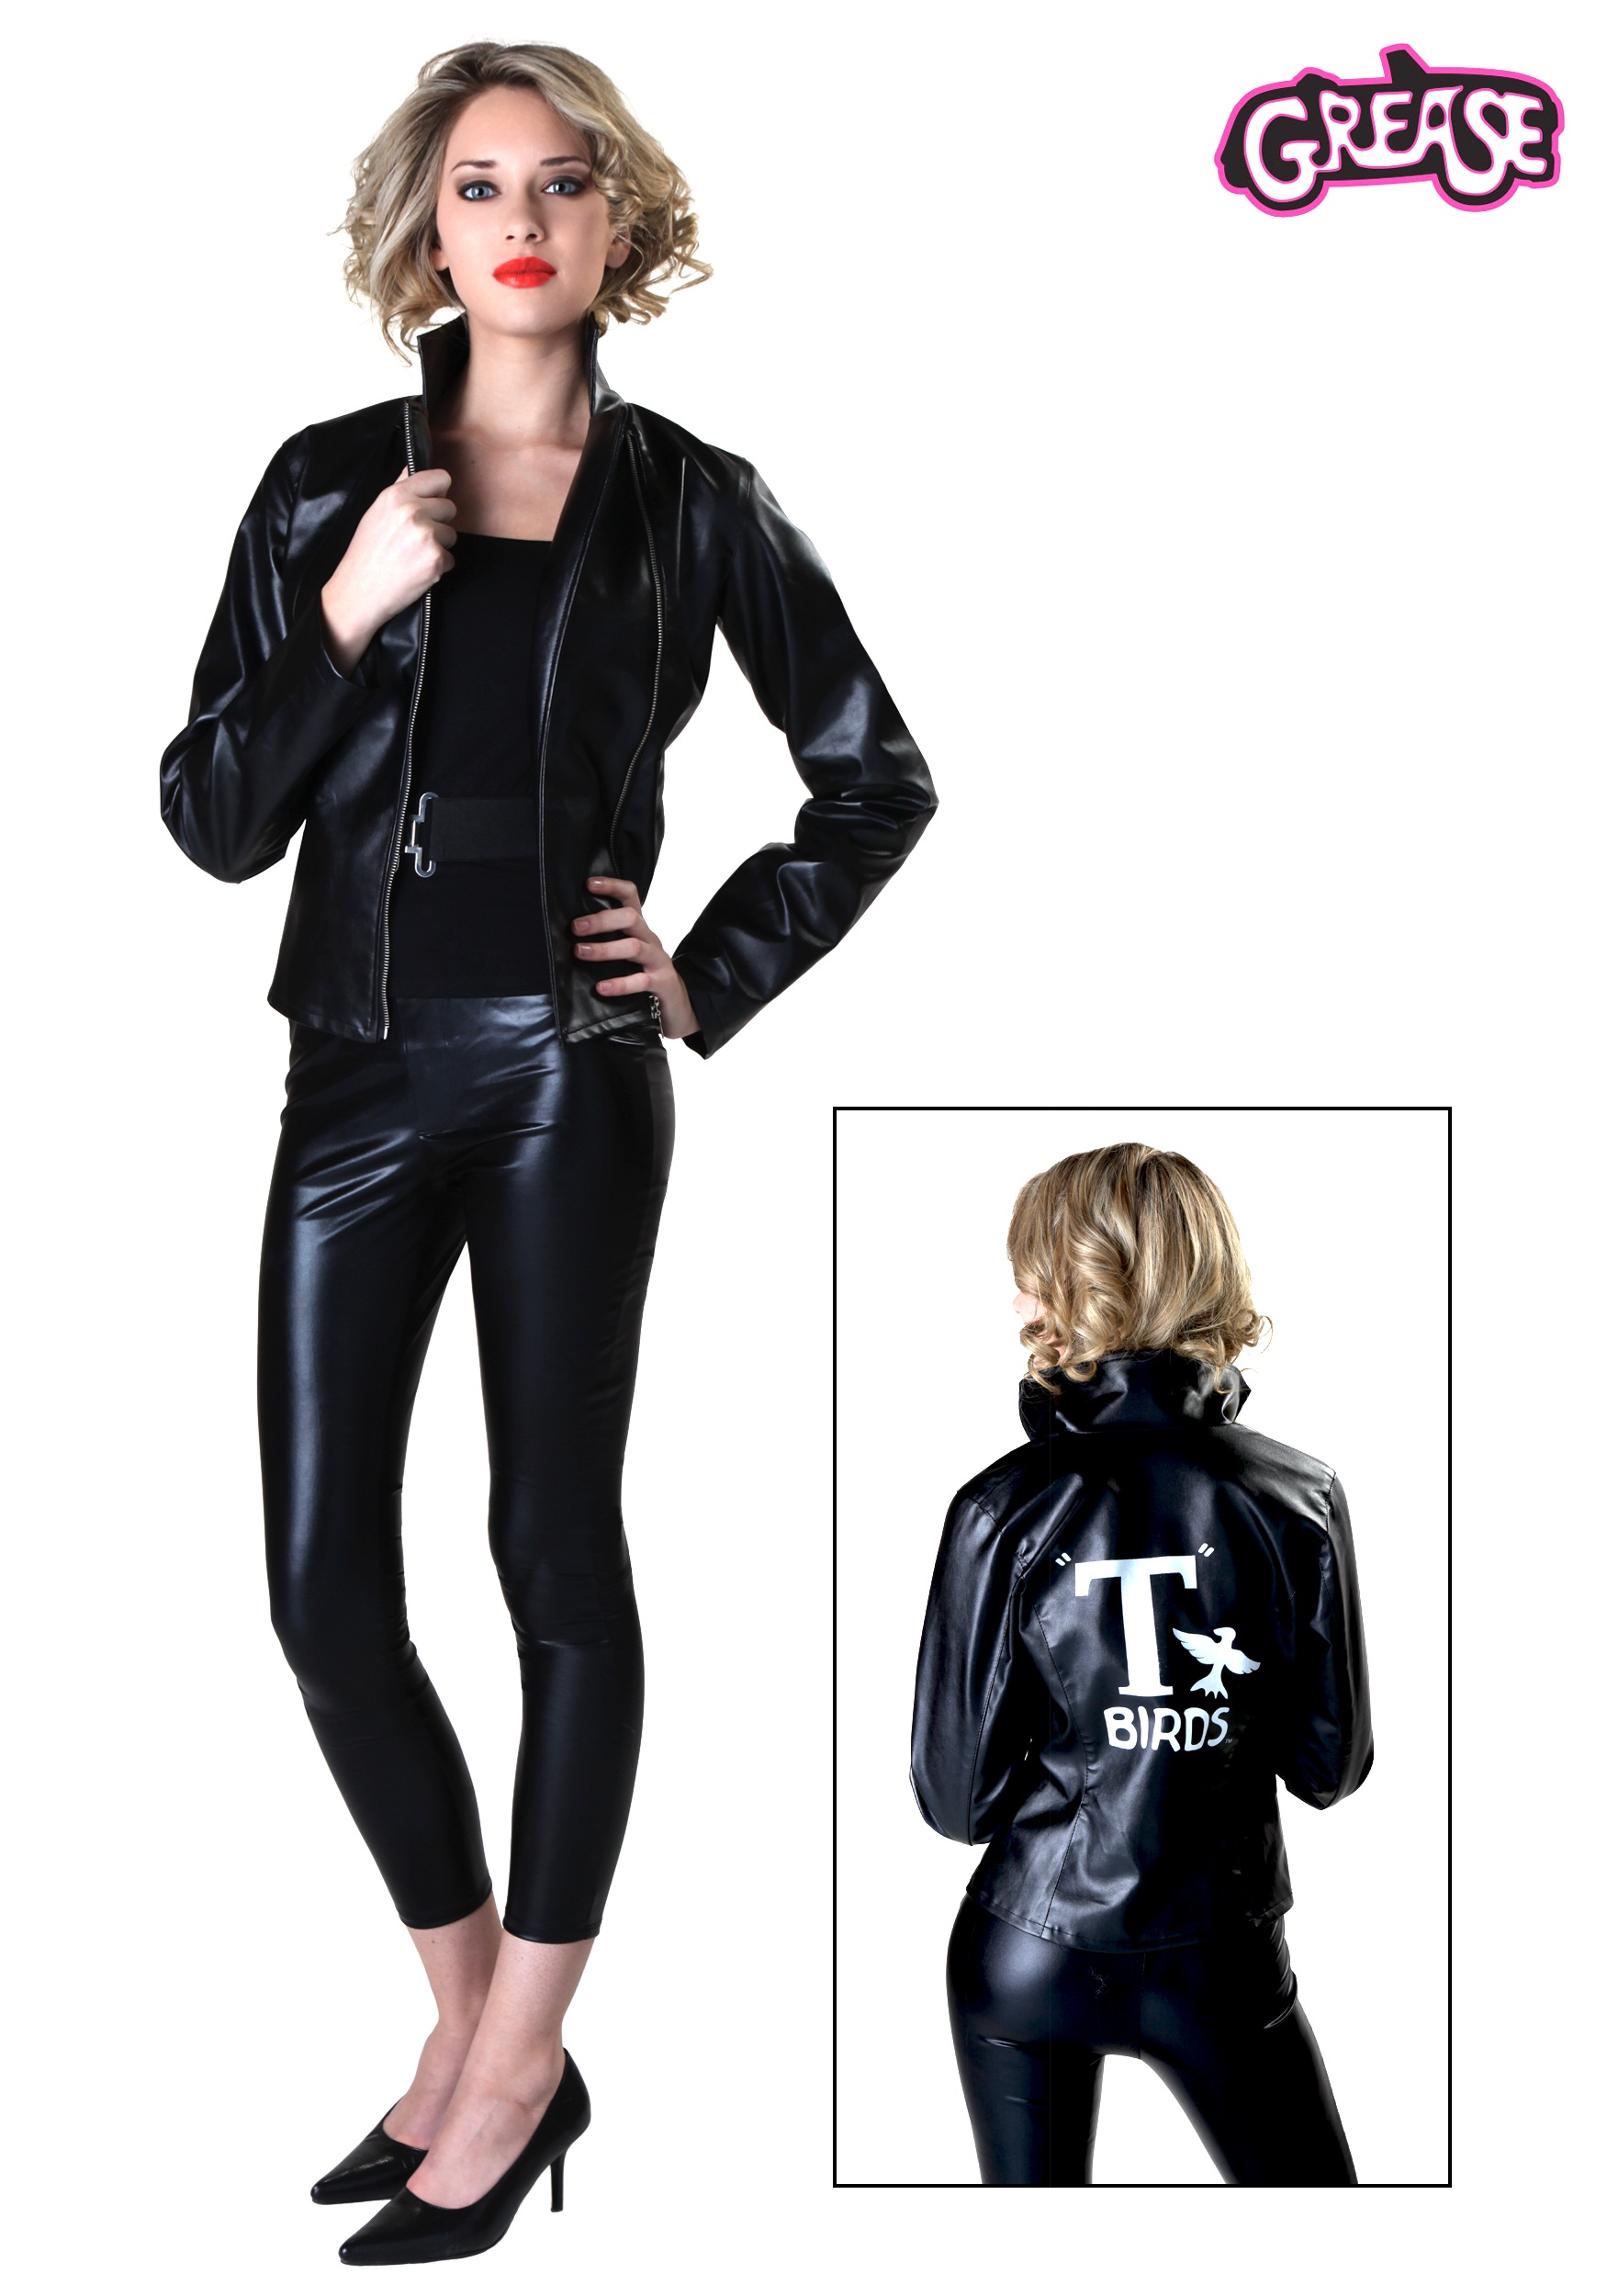 womens grease t birds jacket - Greece Halloween Costumes